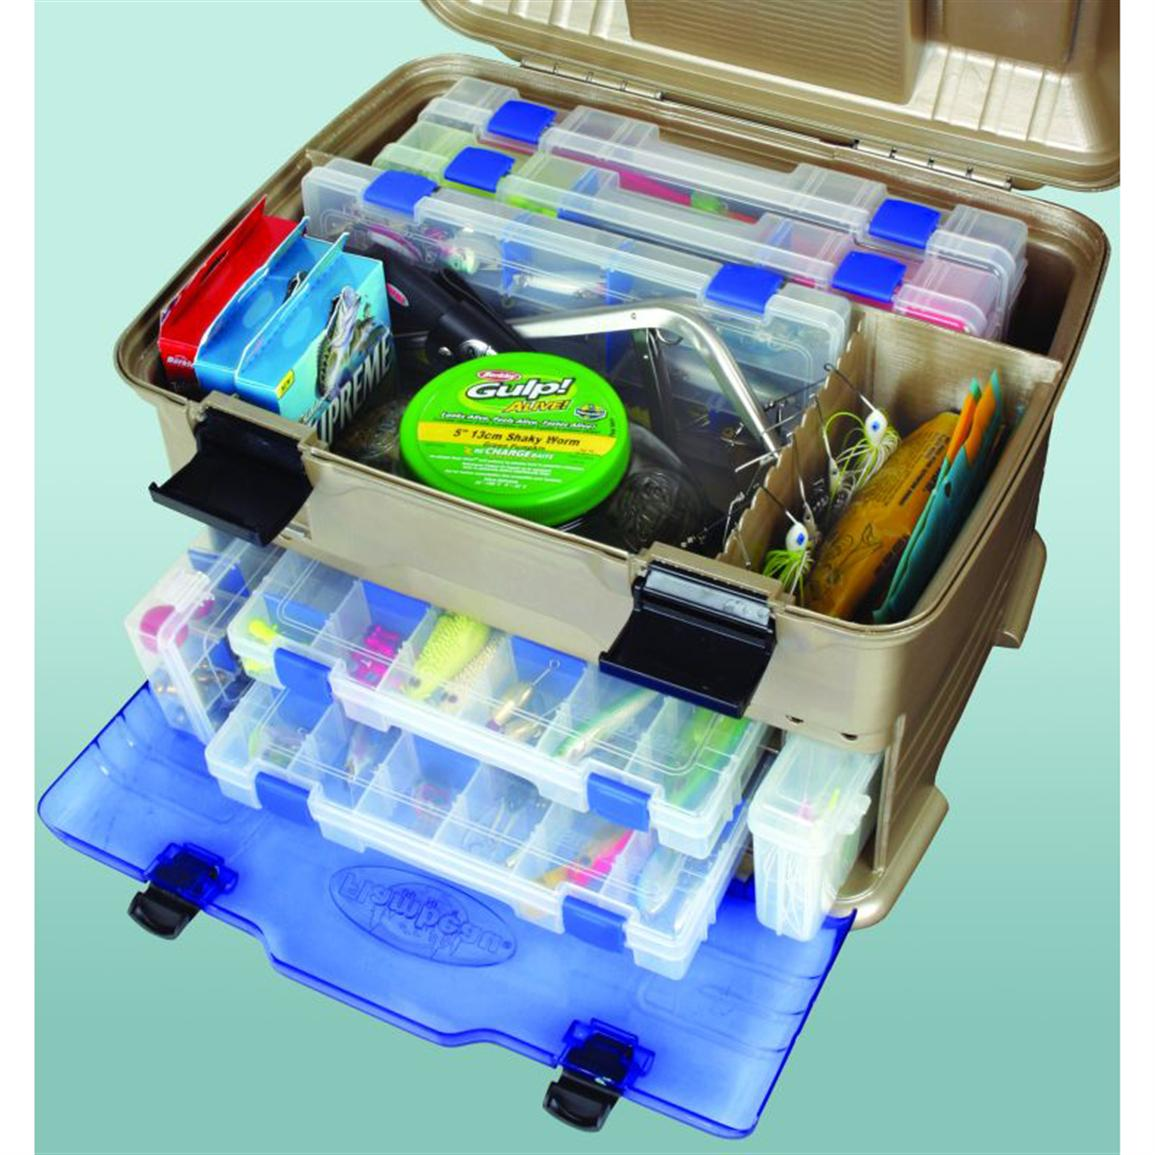 Spinnerbait storage in main top compartment